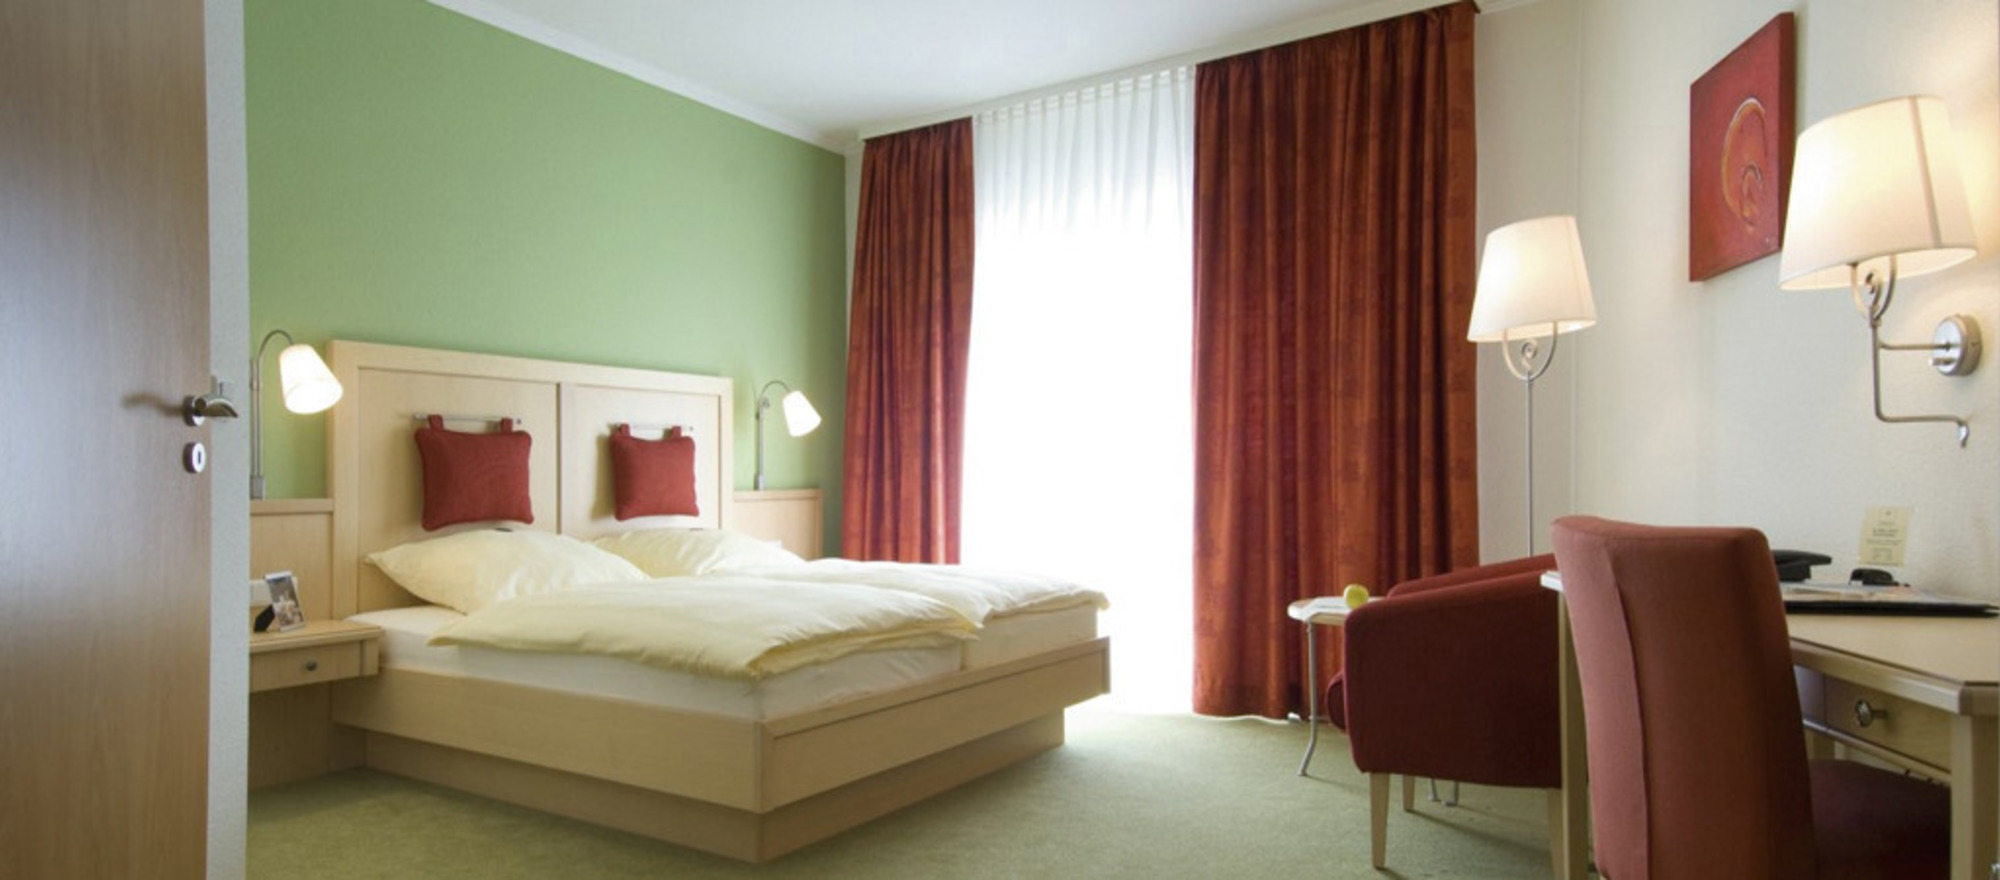 Tasteful furnished rooms in different colours at the 4-star hotel Ringhotel Appelbaum in Guetersloh